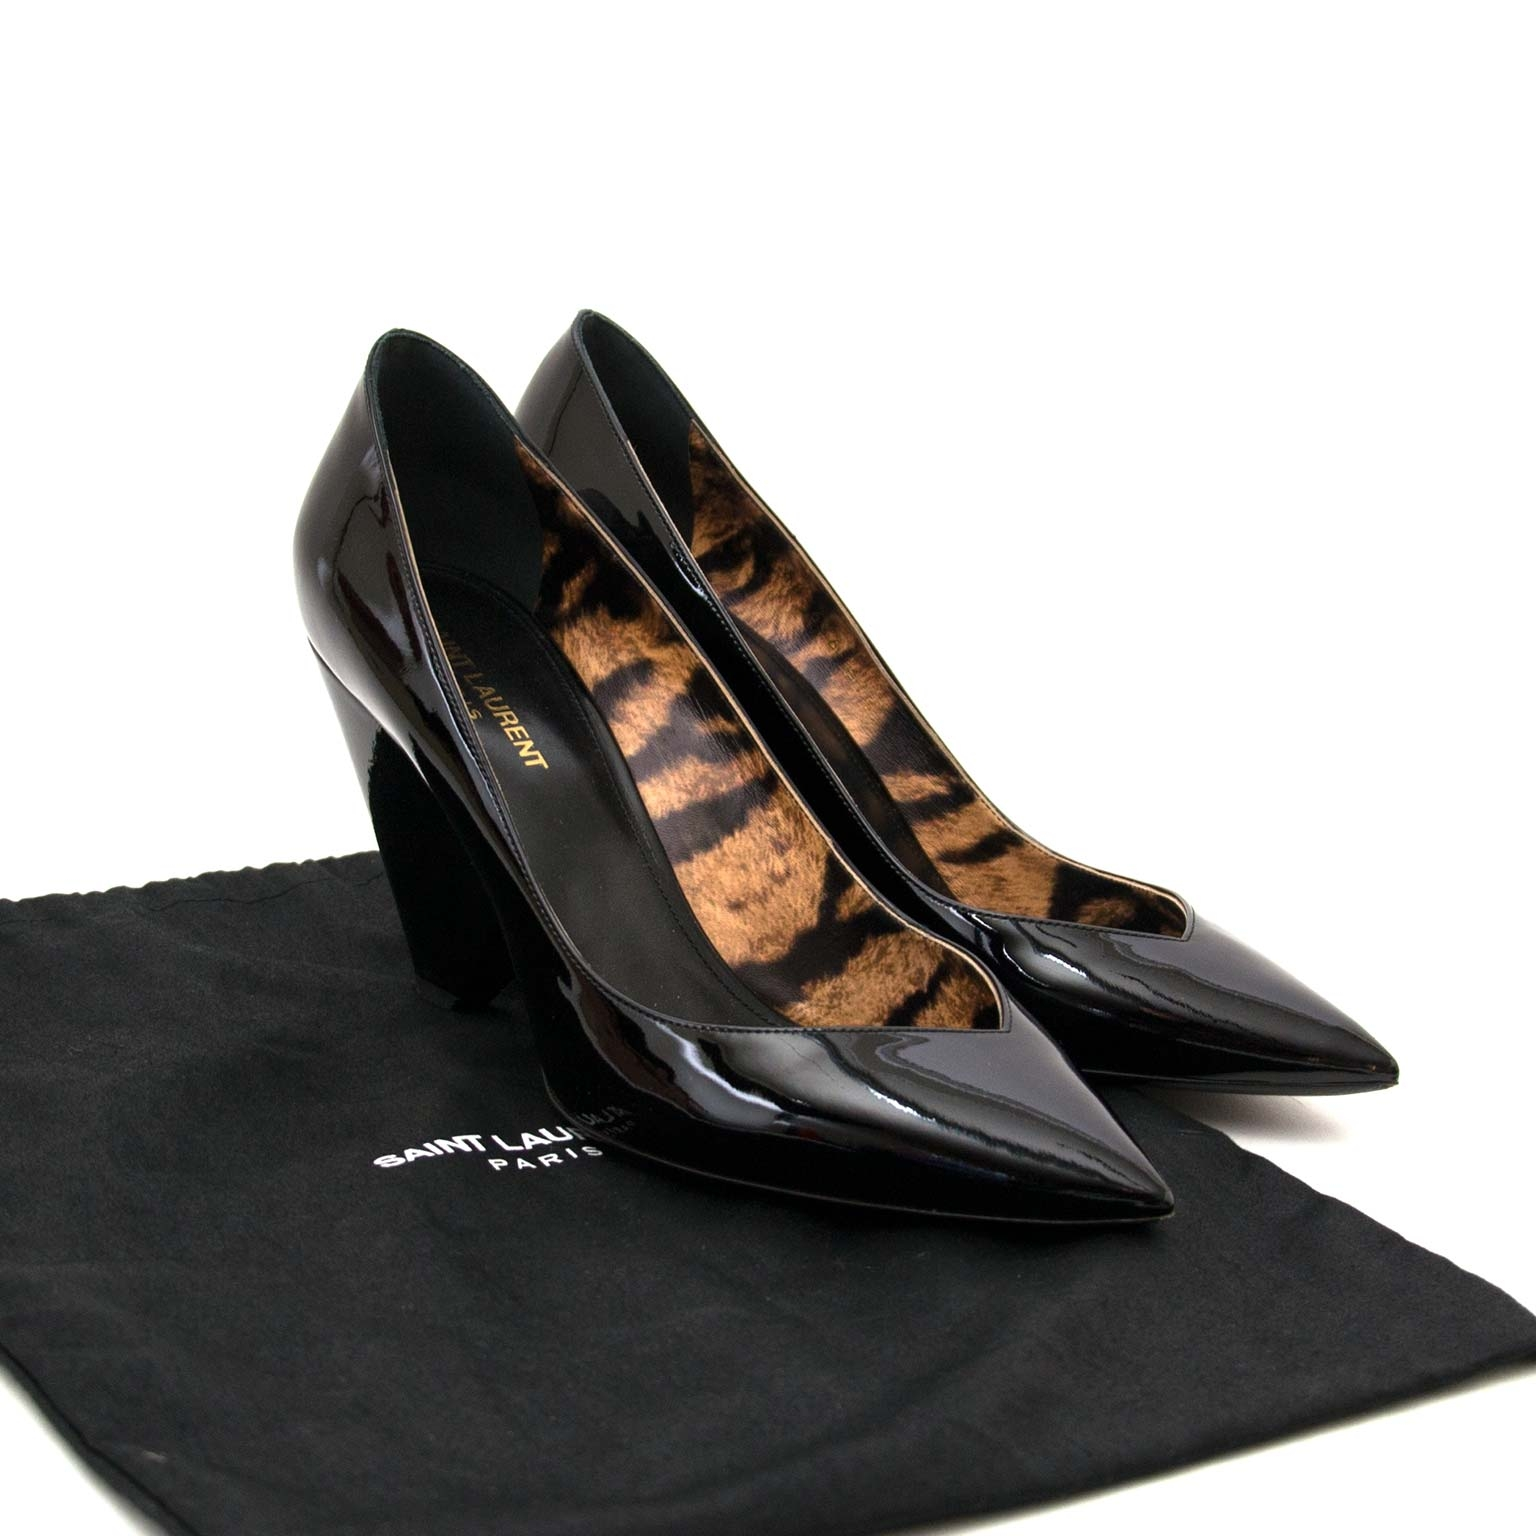 saint laurent black patent triangle block heel pumps now for sale at labellov vintage fashion webshop belgium